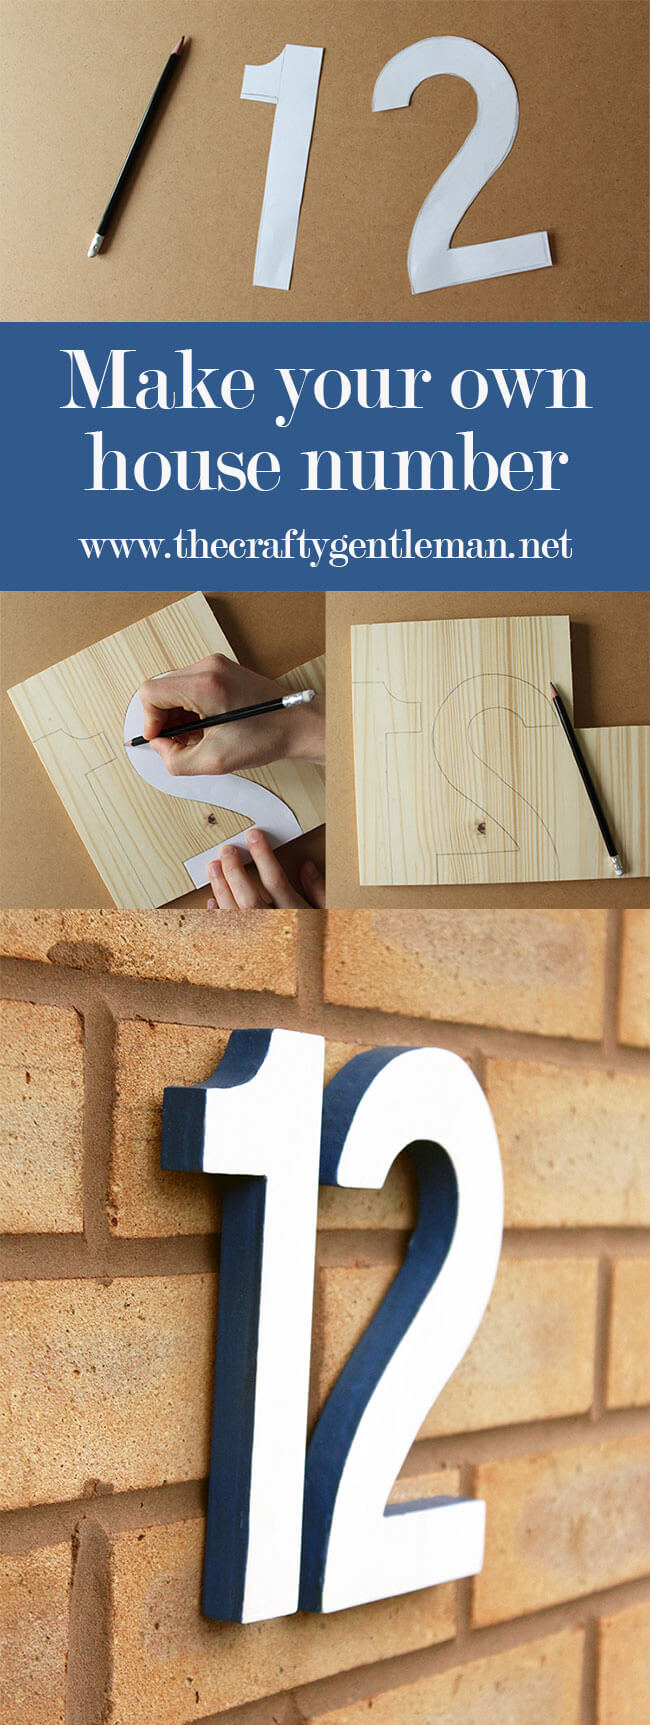 Learn how to make your own house number sign in this step by step tutorial. No complex skills or equipment required! Click through for more